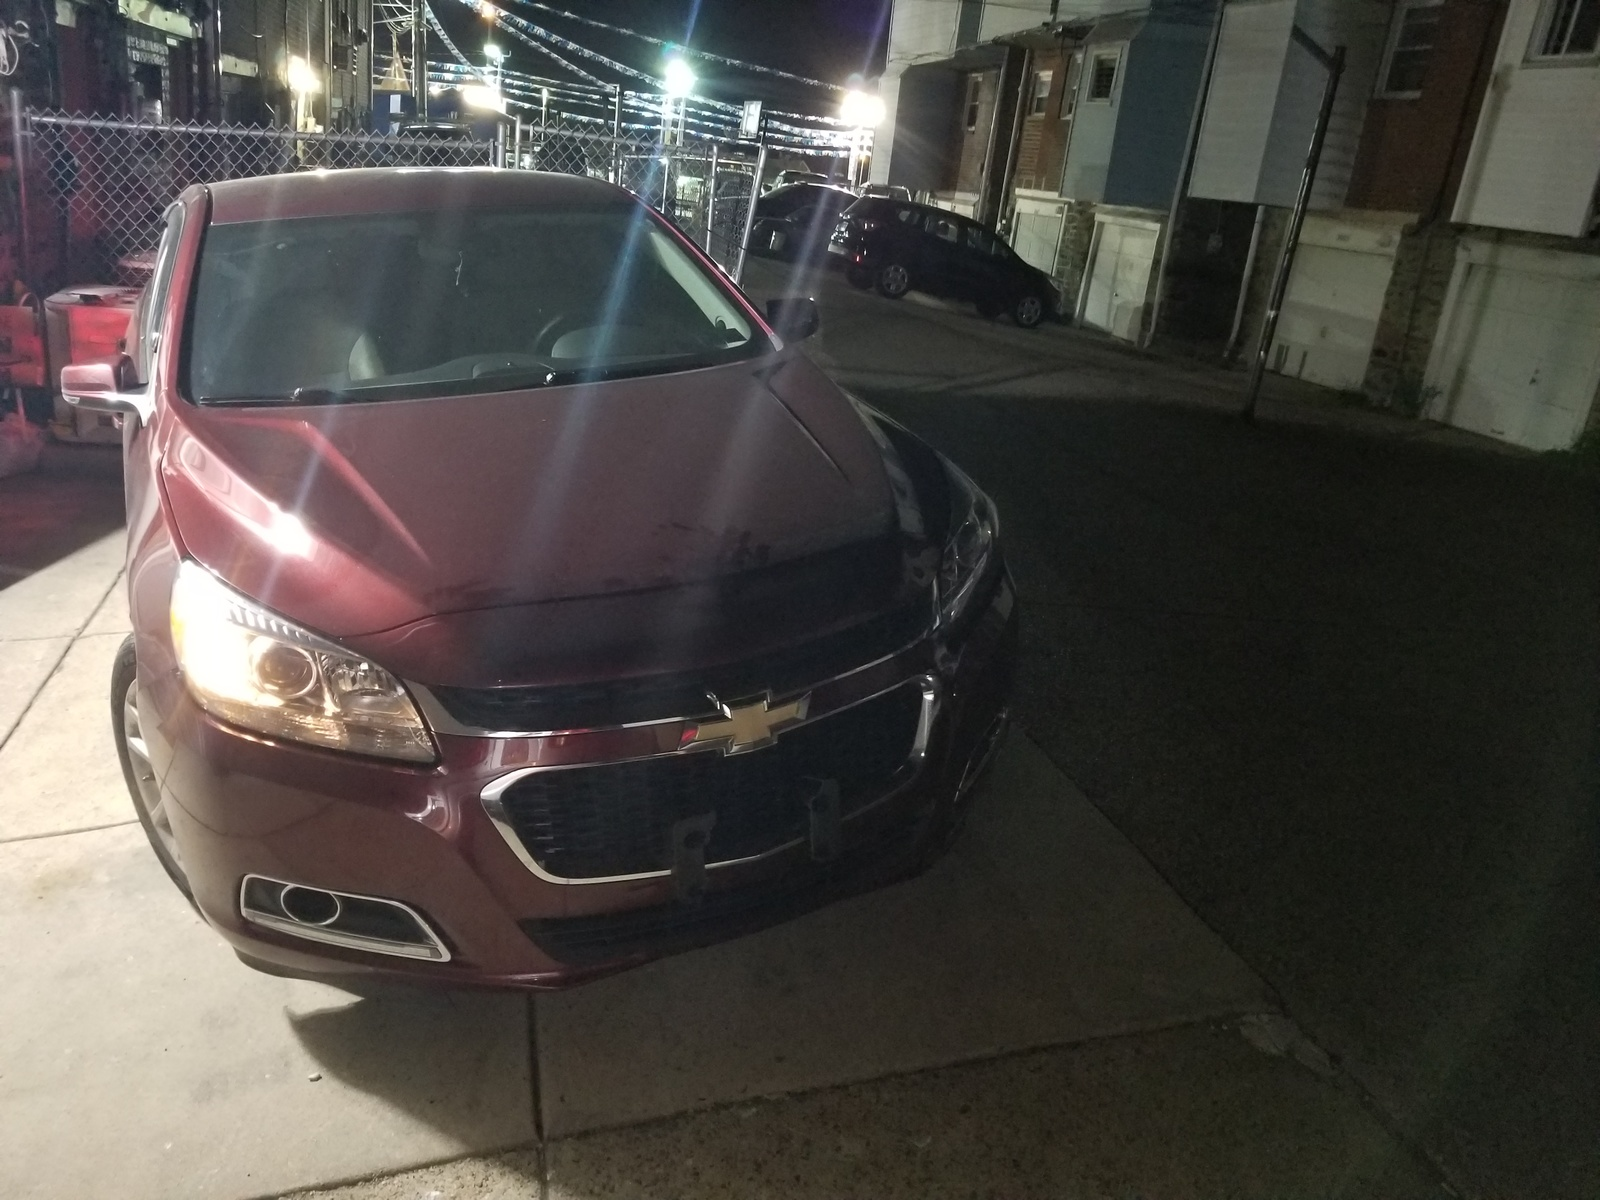 Chevrolet Malibu Questions - Issue with lights - CarGurus